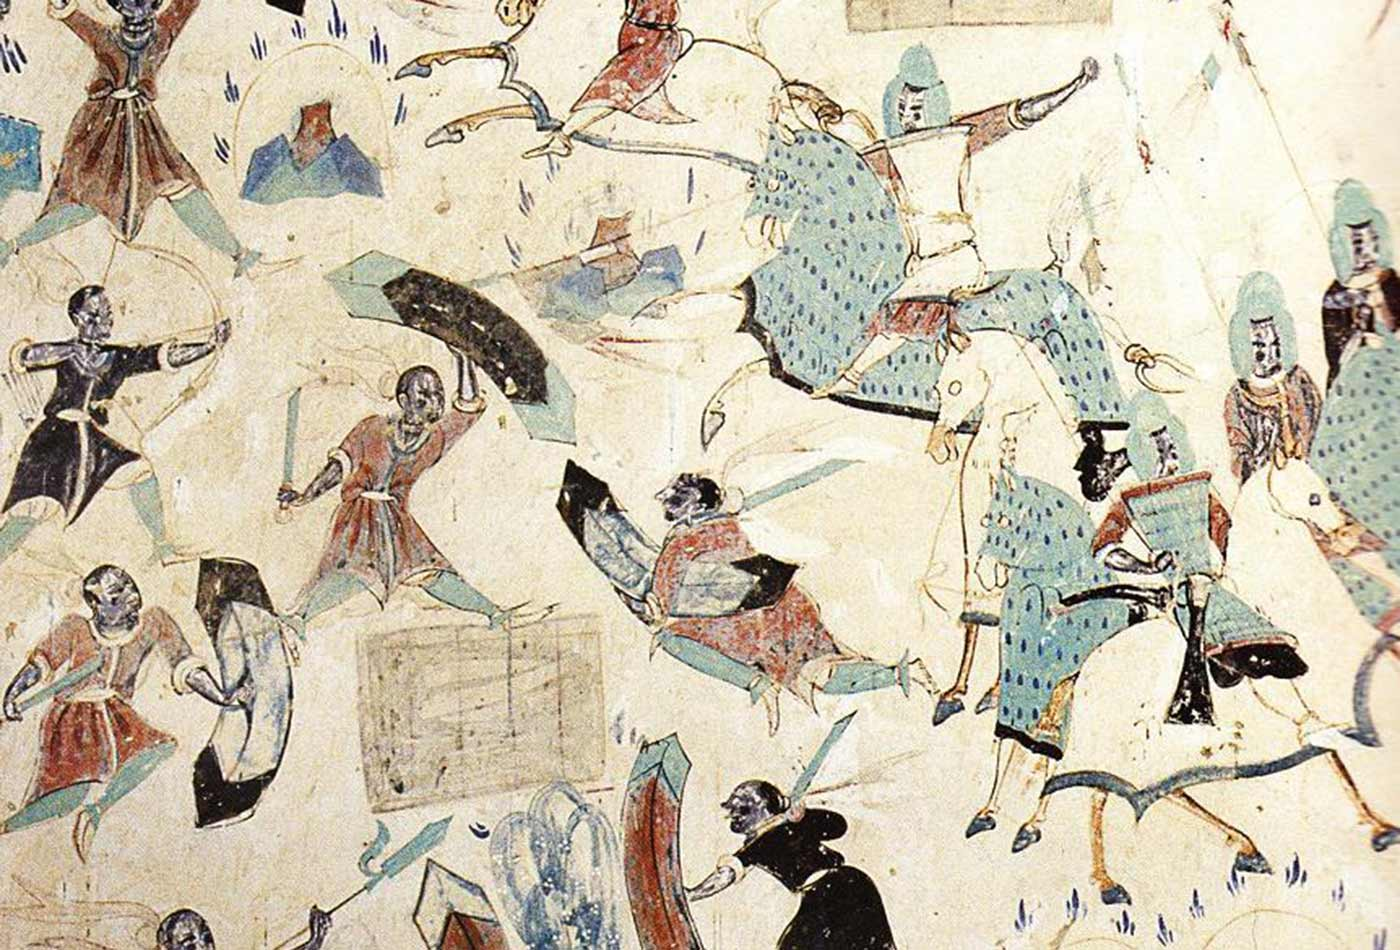 A depiction of the Avadana story of the Five Hundred Robbers showing soldiers wearing medieval Chinese armour, from Mogao Cave 285, Dunhuang, Gansu, China.